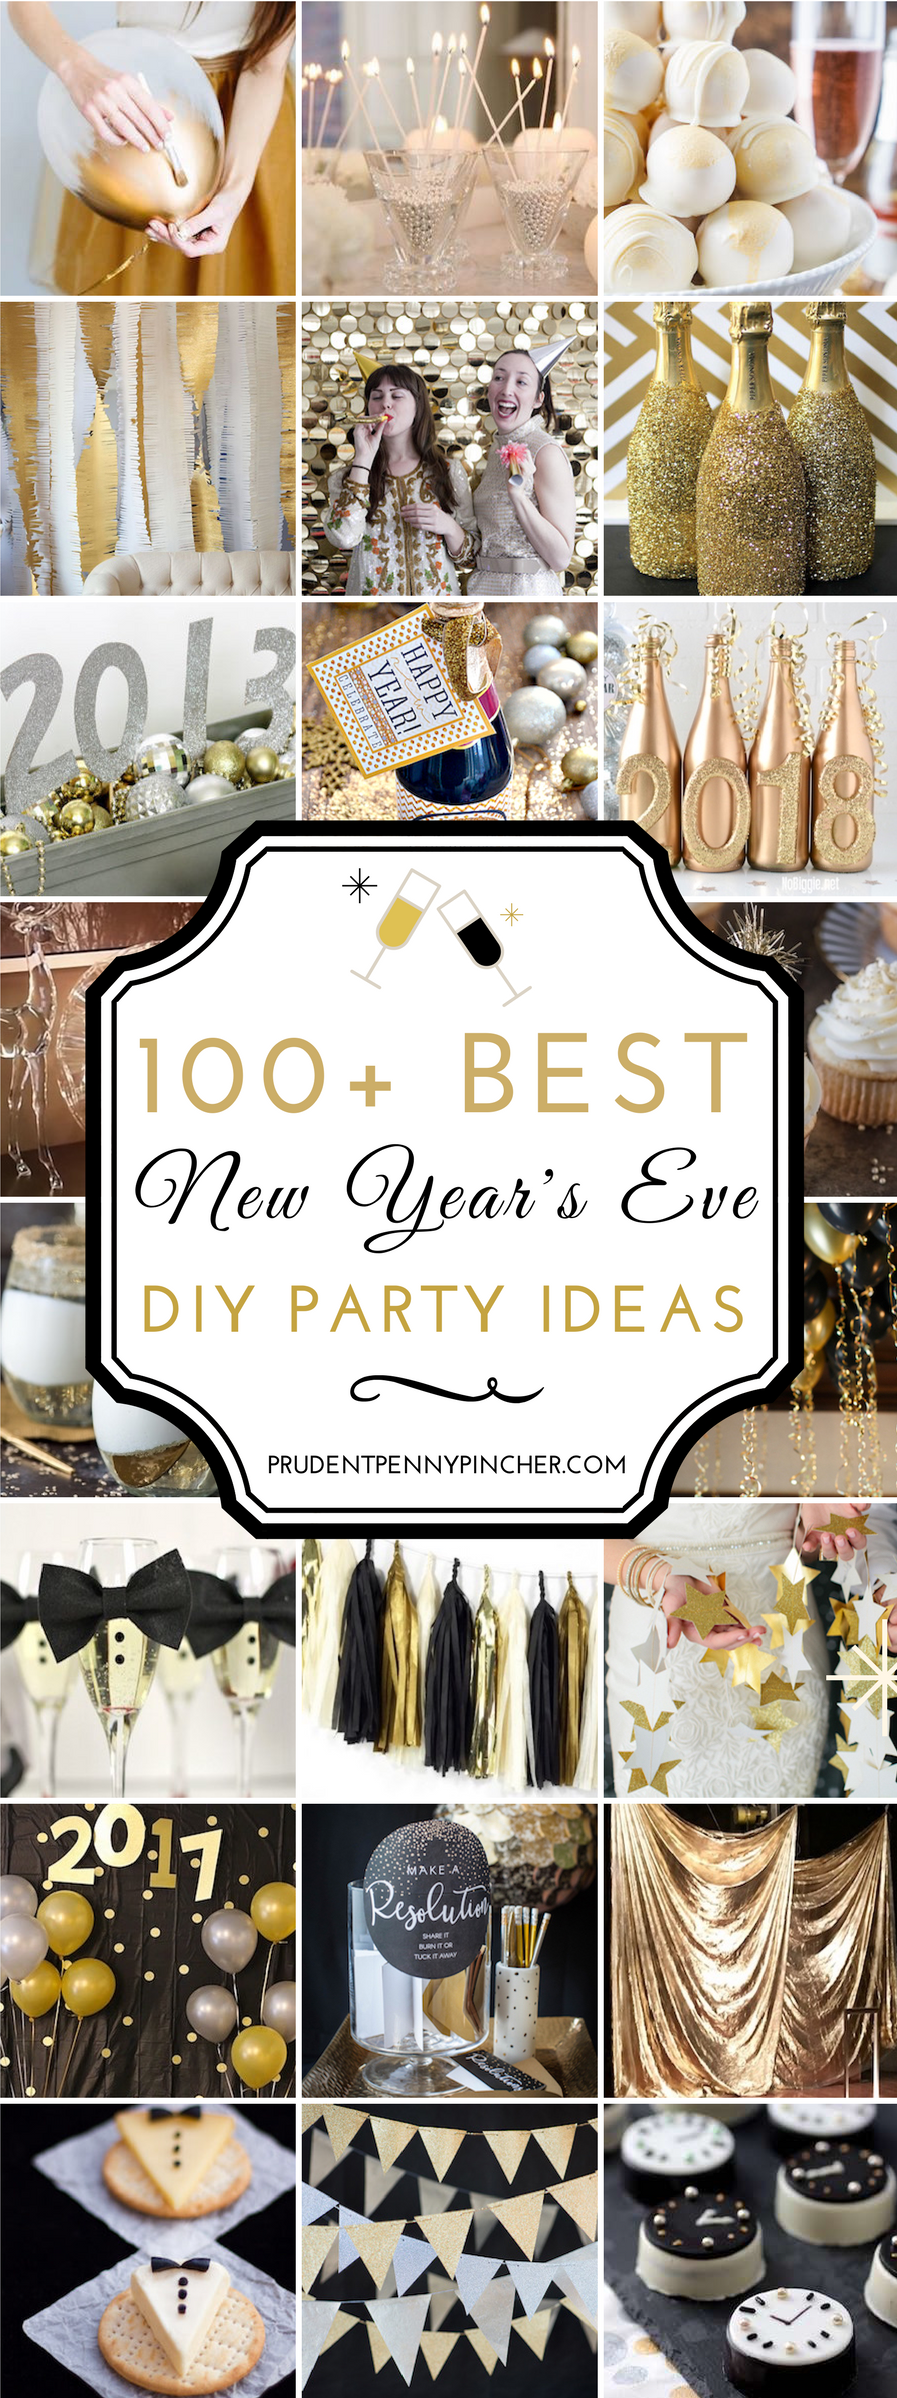 100 Best New Year\'s Eve Party Ideas | Nye, Holidays and Frugal living